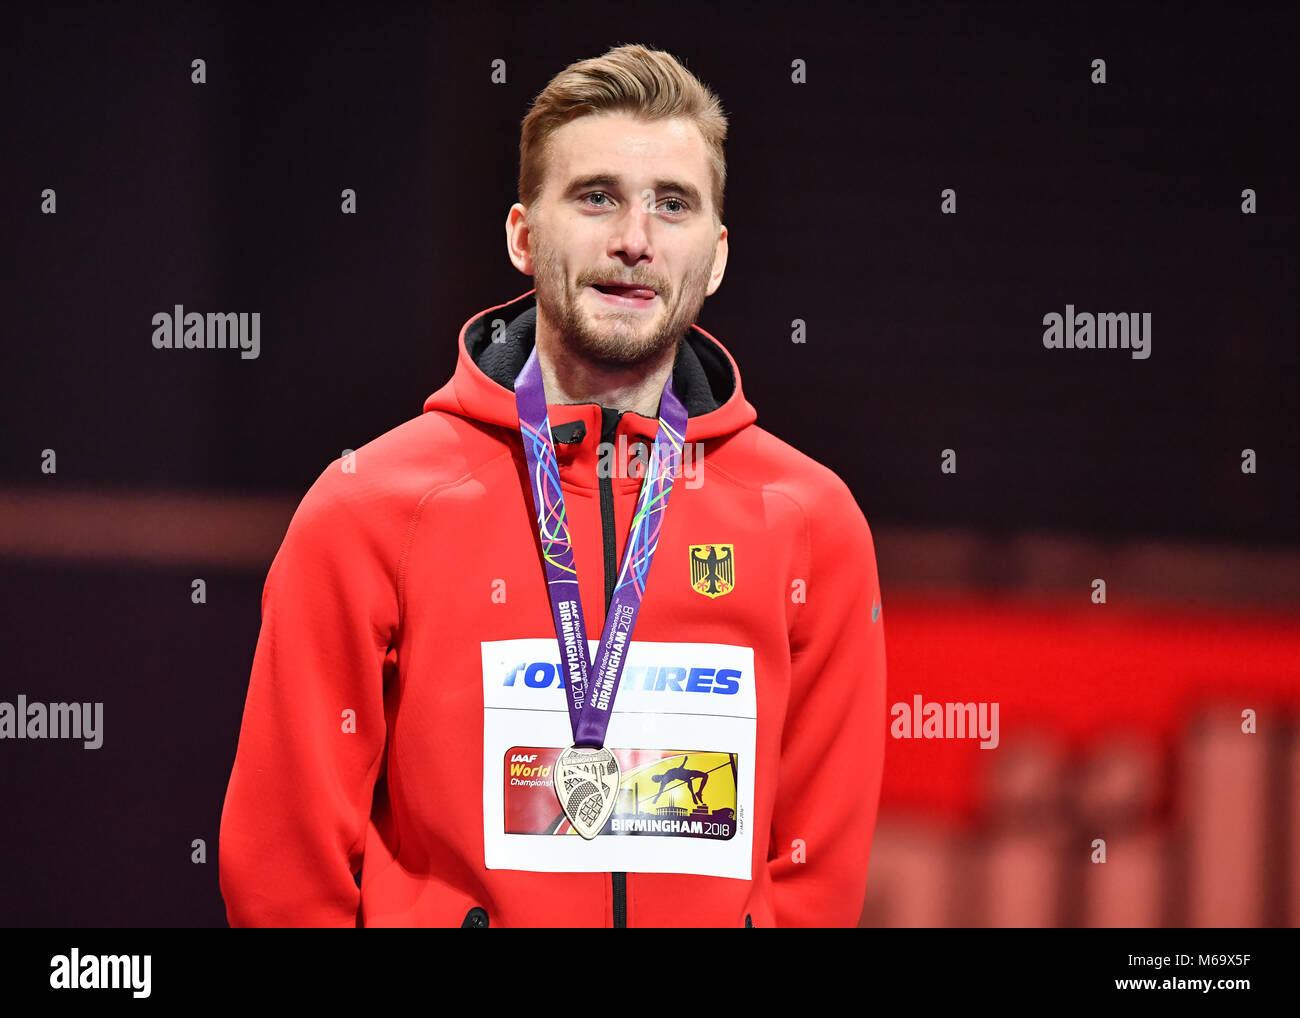 Birmingham, UK. 1st March, 2018.Mateusz Przybylko (GER) at medal Presentation during IAAF World Indoor Championships - Stock Image